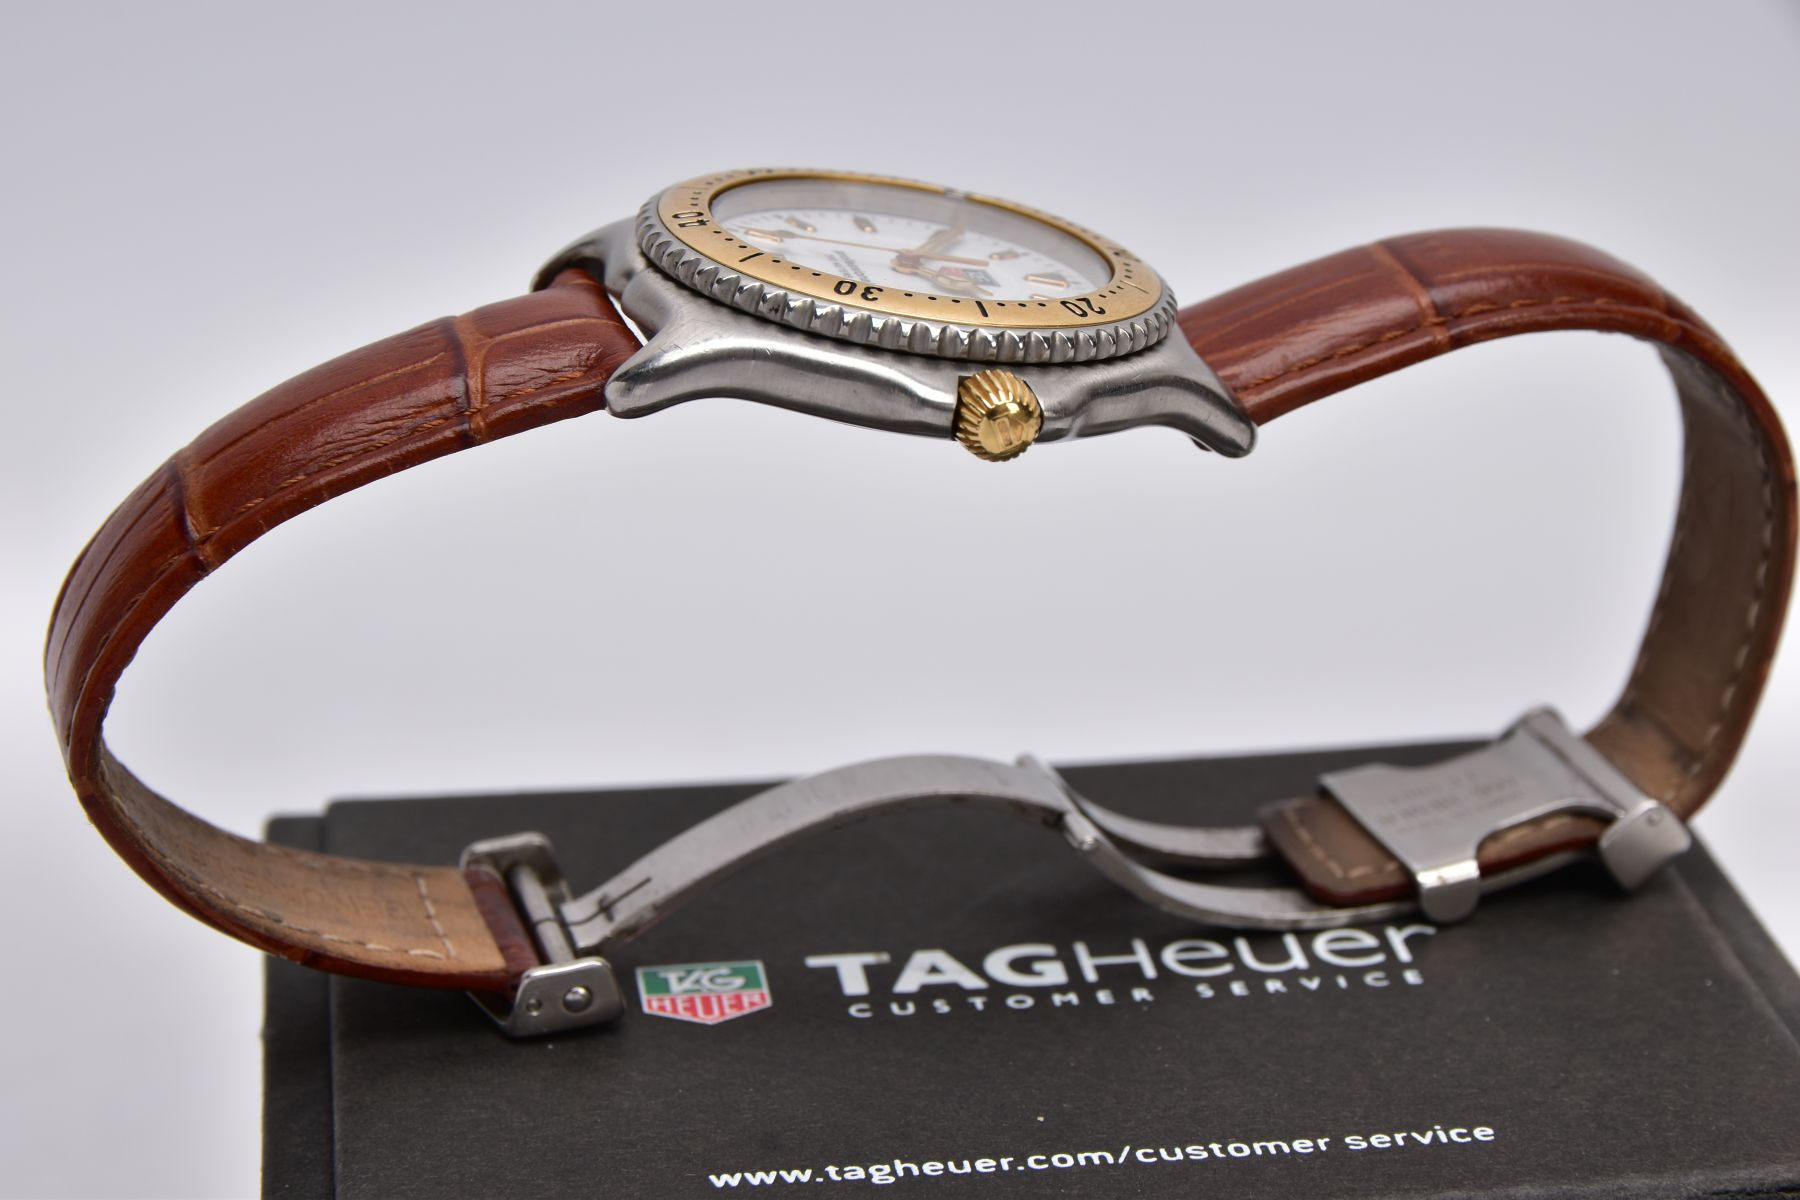 A GENTS 'TAG HEUER' WRISTWATCH, round white dial signed 'Tag Heuer, Professional 200 meters', - Image 6 of 6